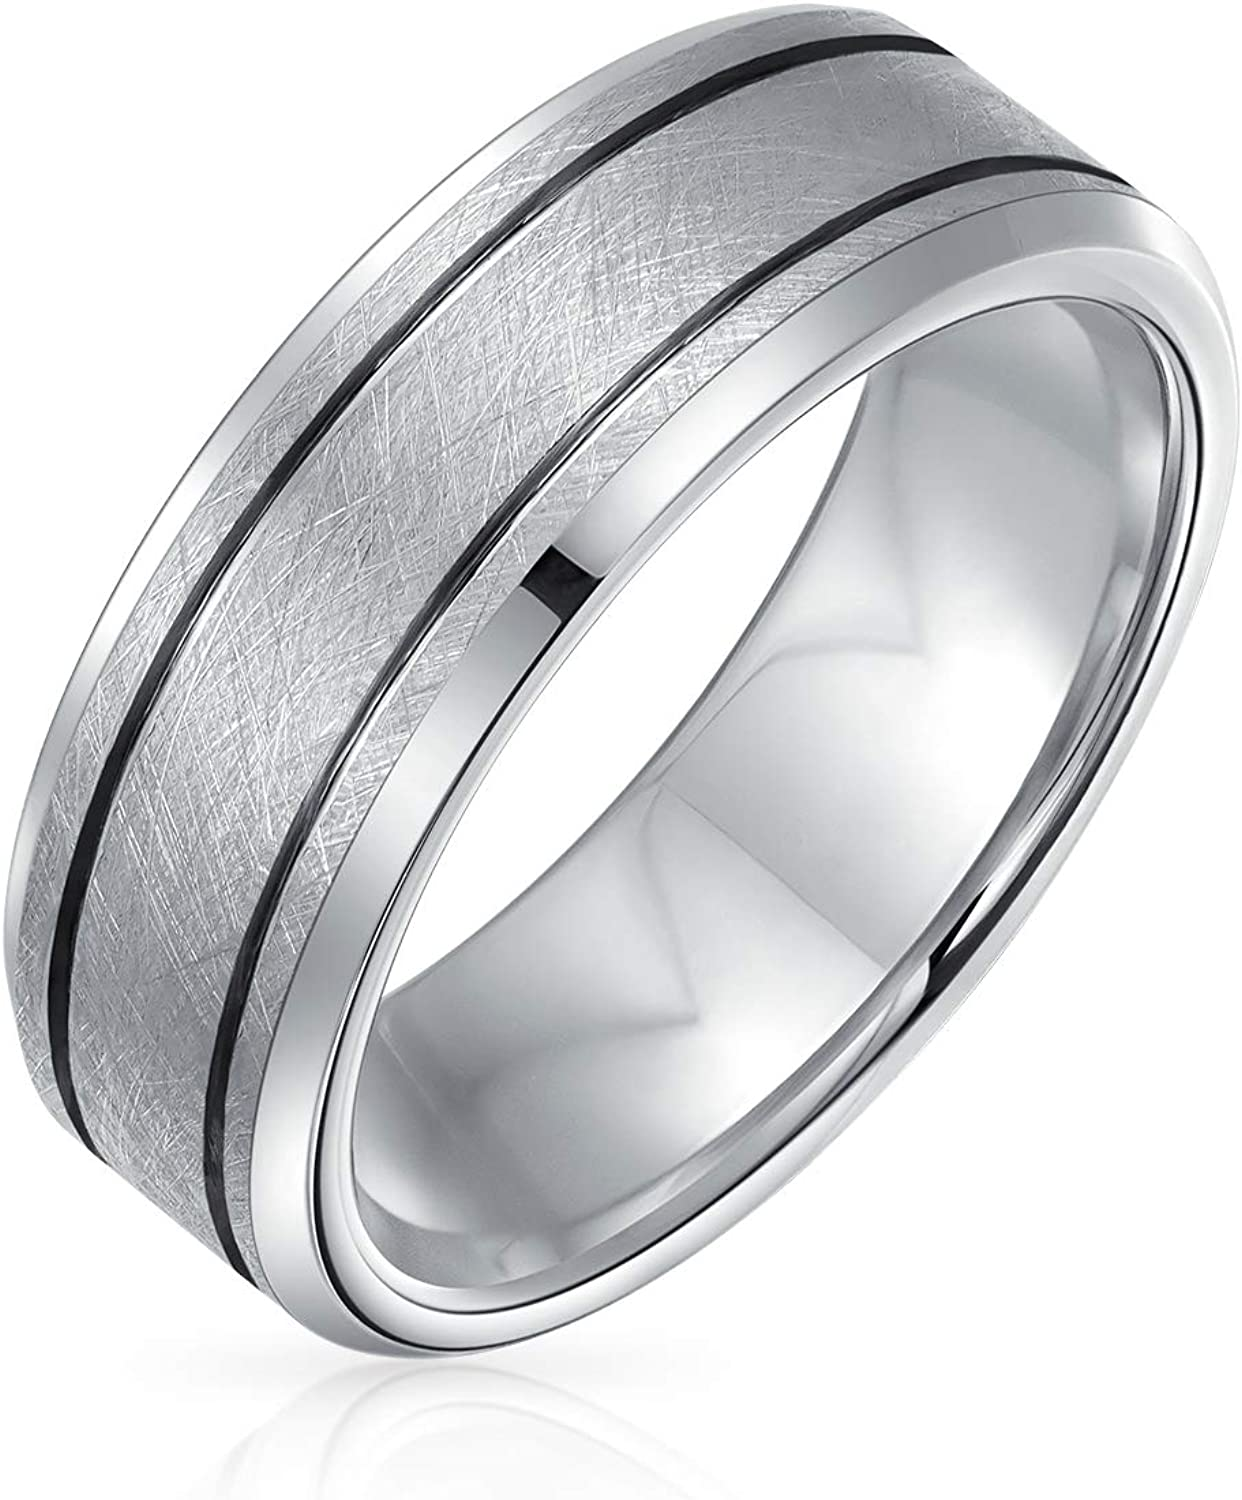 Bling Jewelry Wide Sliver Tone Double Grooved Brushed Matte Titanium Wedding Band Ring for Men Comfort Fit 7MM